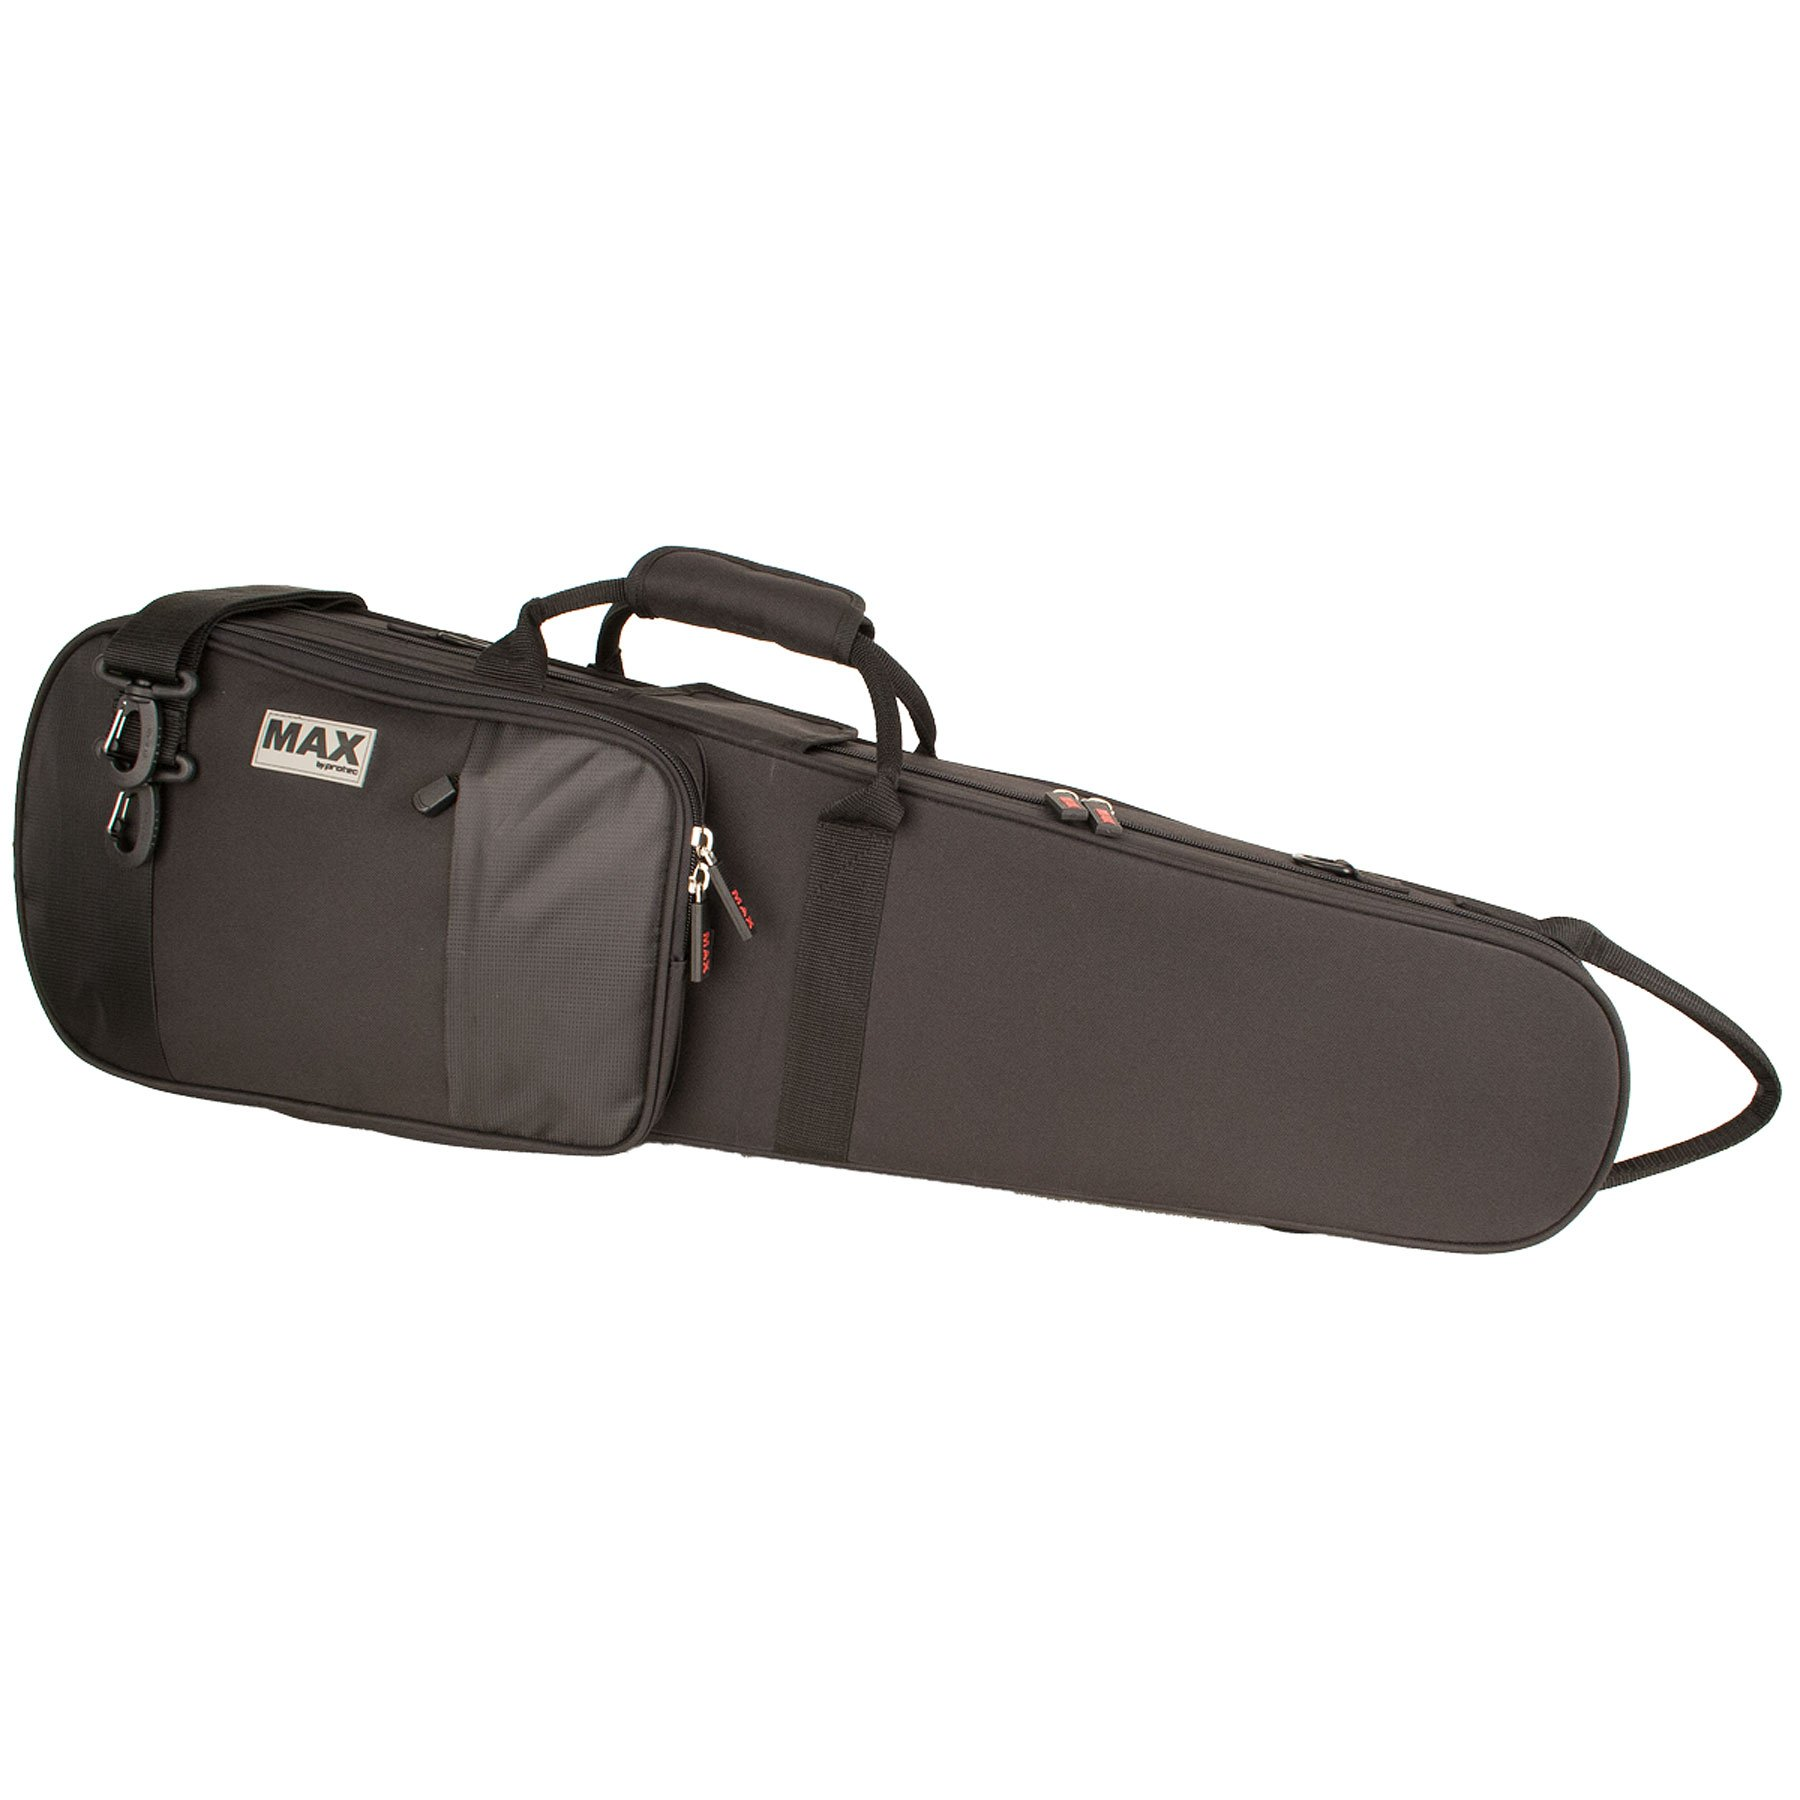 Protec Viola MAX Shaped Case, Fits Violas 16 to 16.5'' In Body Length, Model MX016